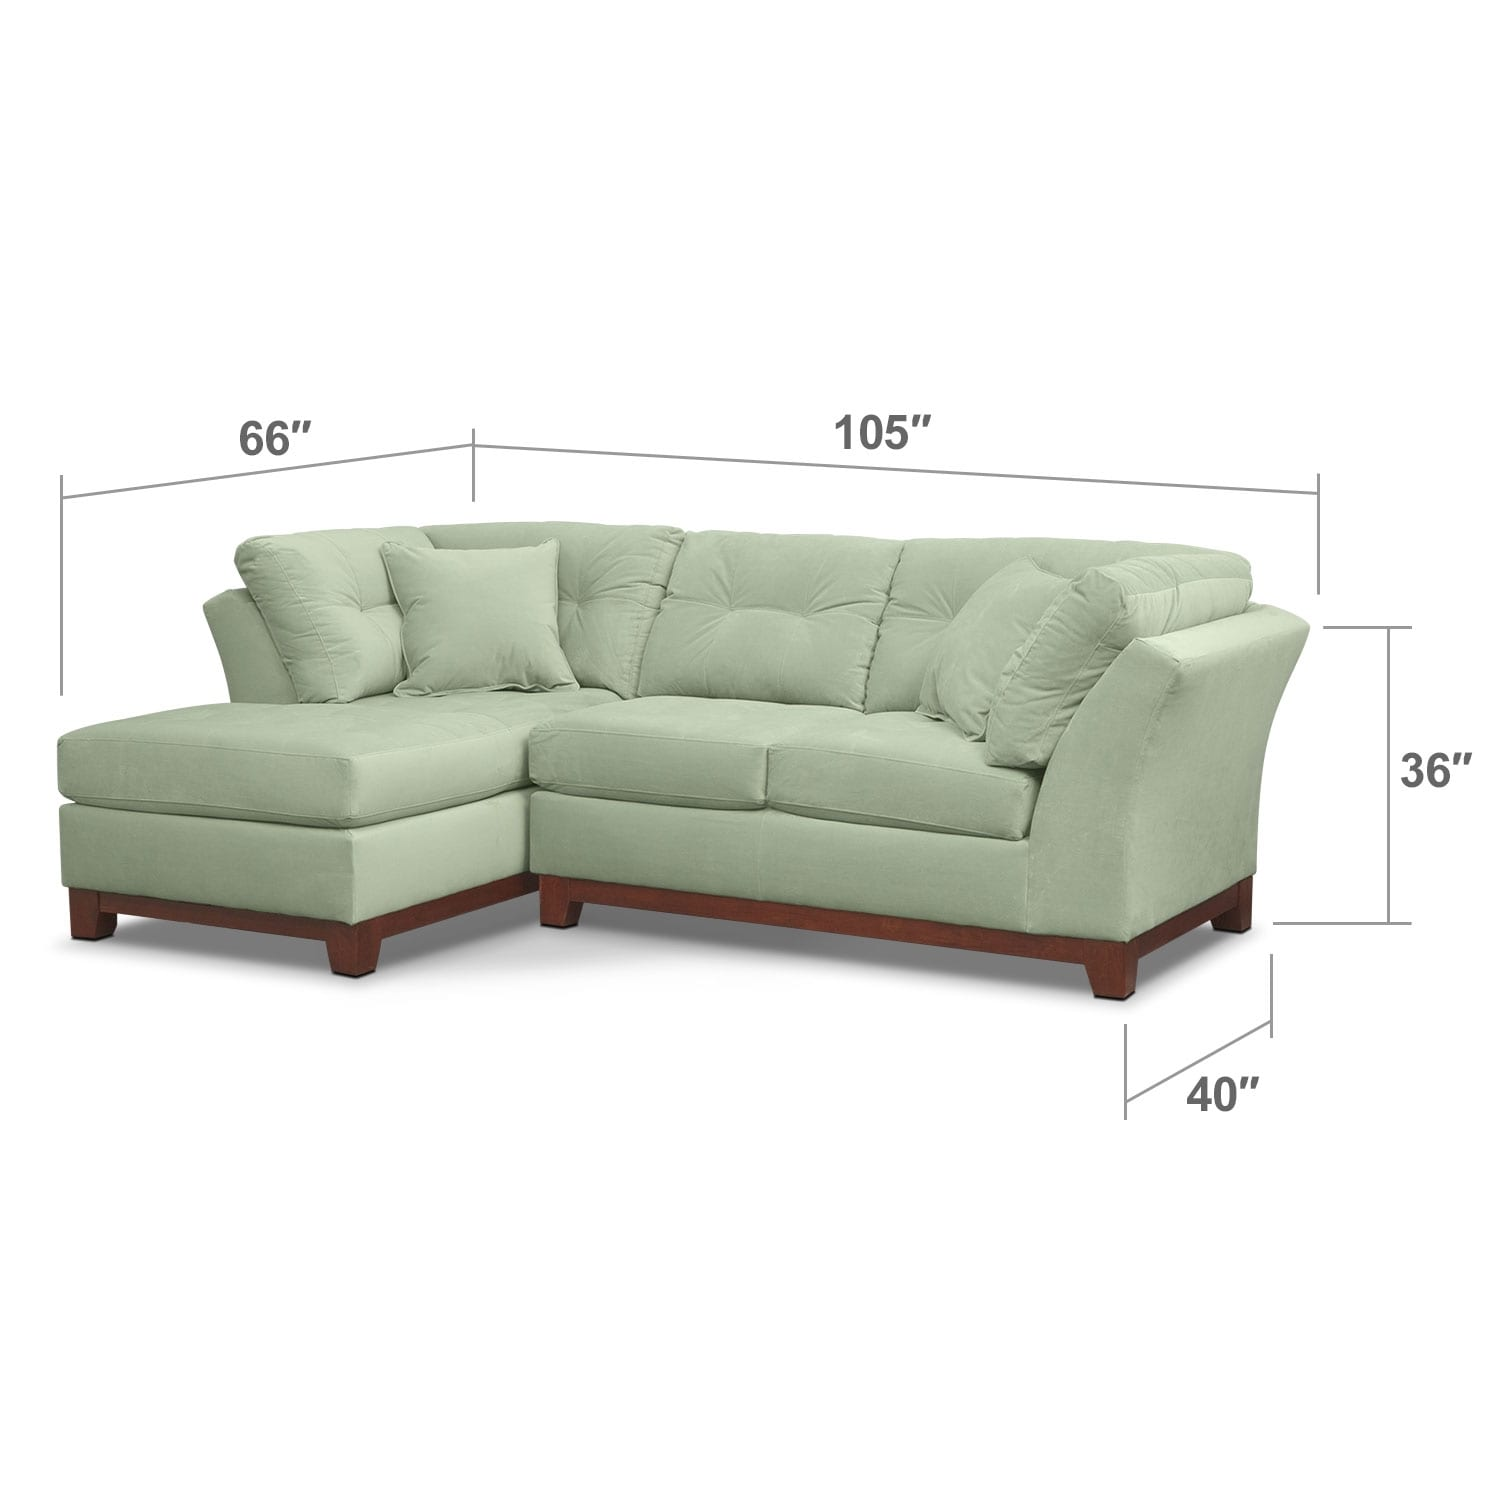 Living Room Furniture - Solace 2-Piece Sectional with Left-Facing Chaise - Spa